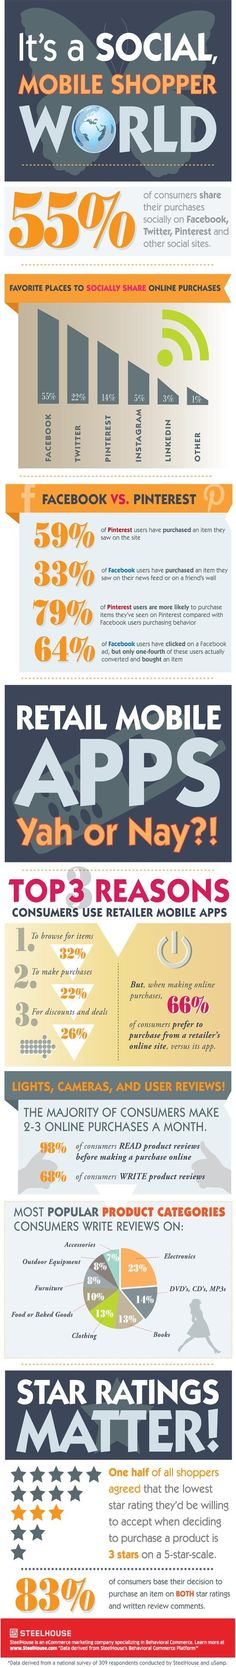 Social is a mobile shopper world. #infographic http://actionnow.mopros.mobi/mobilesystem